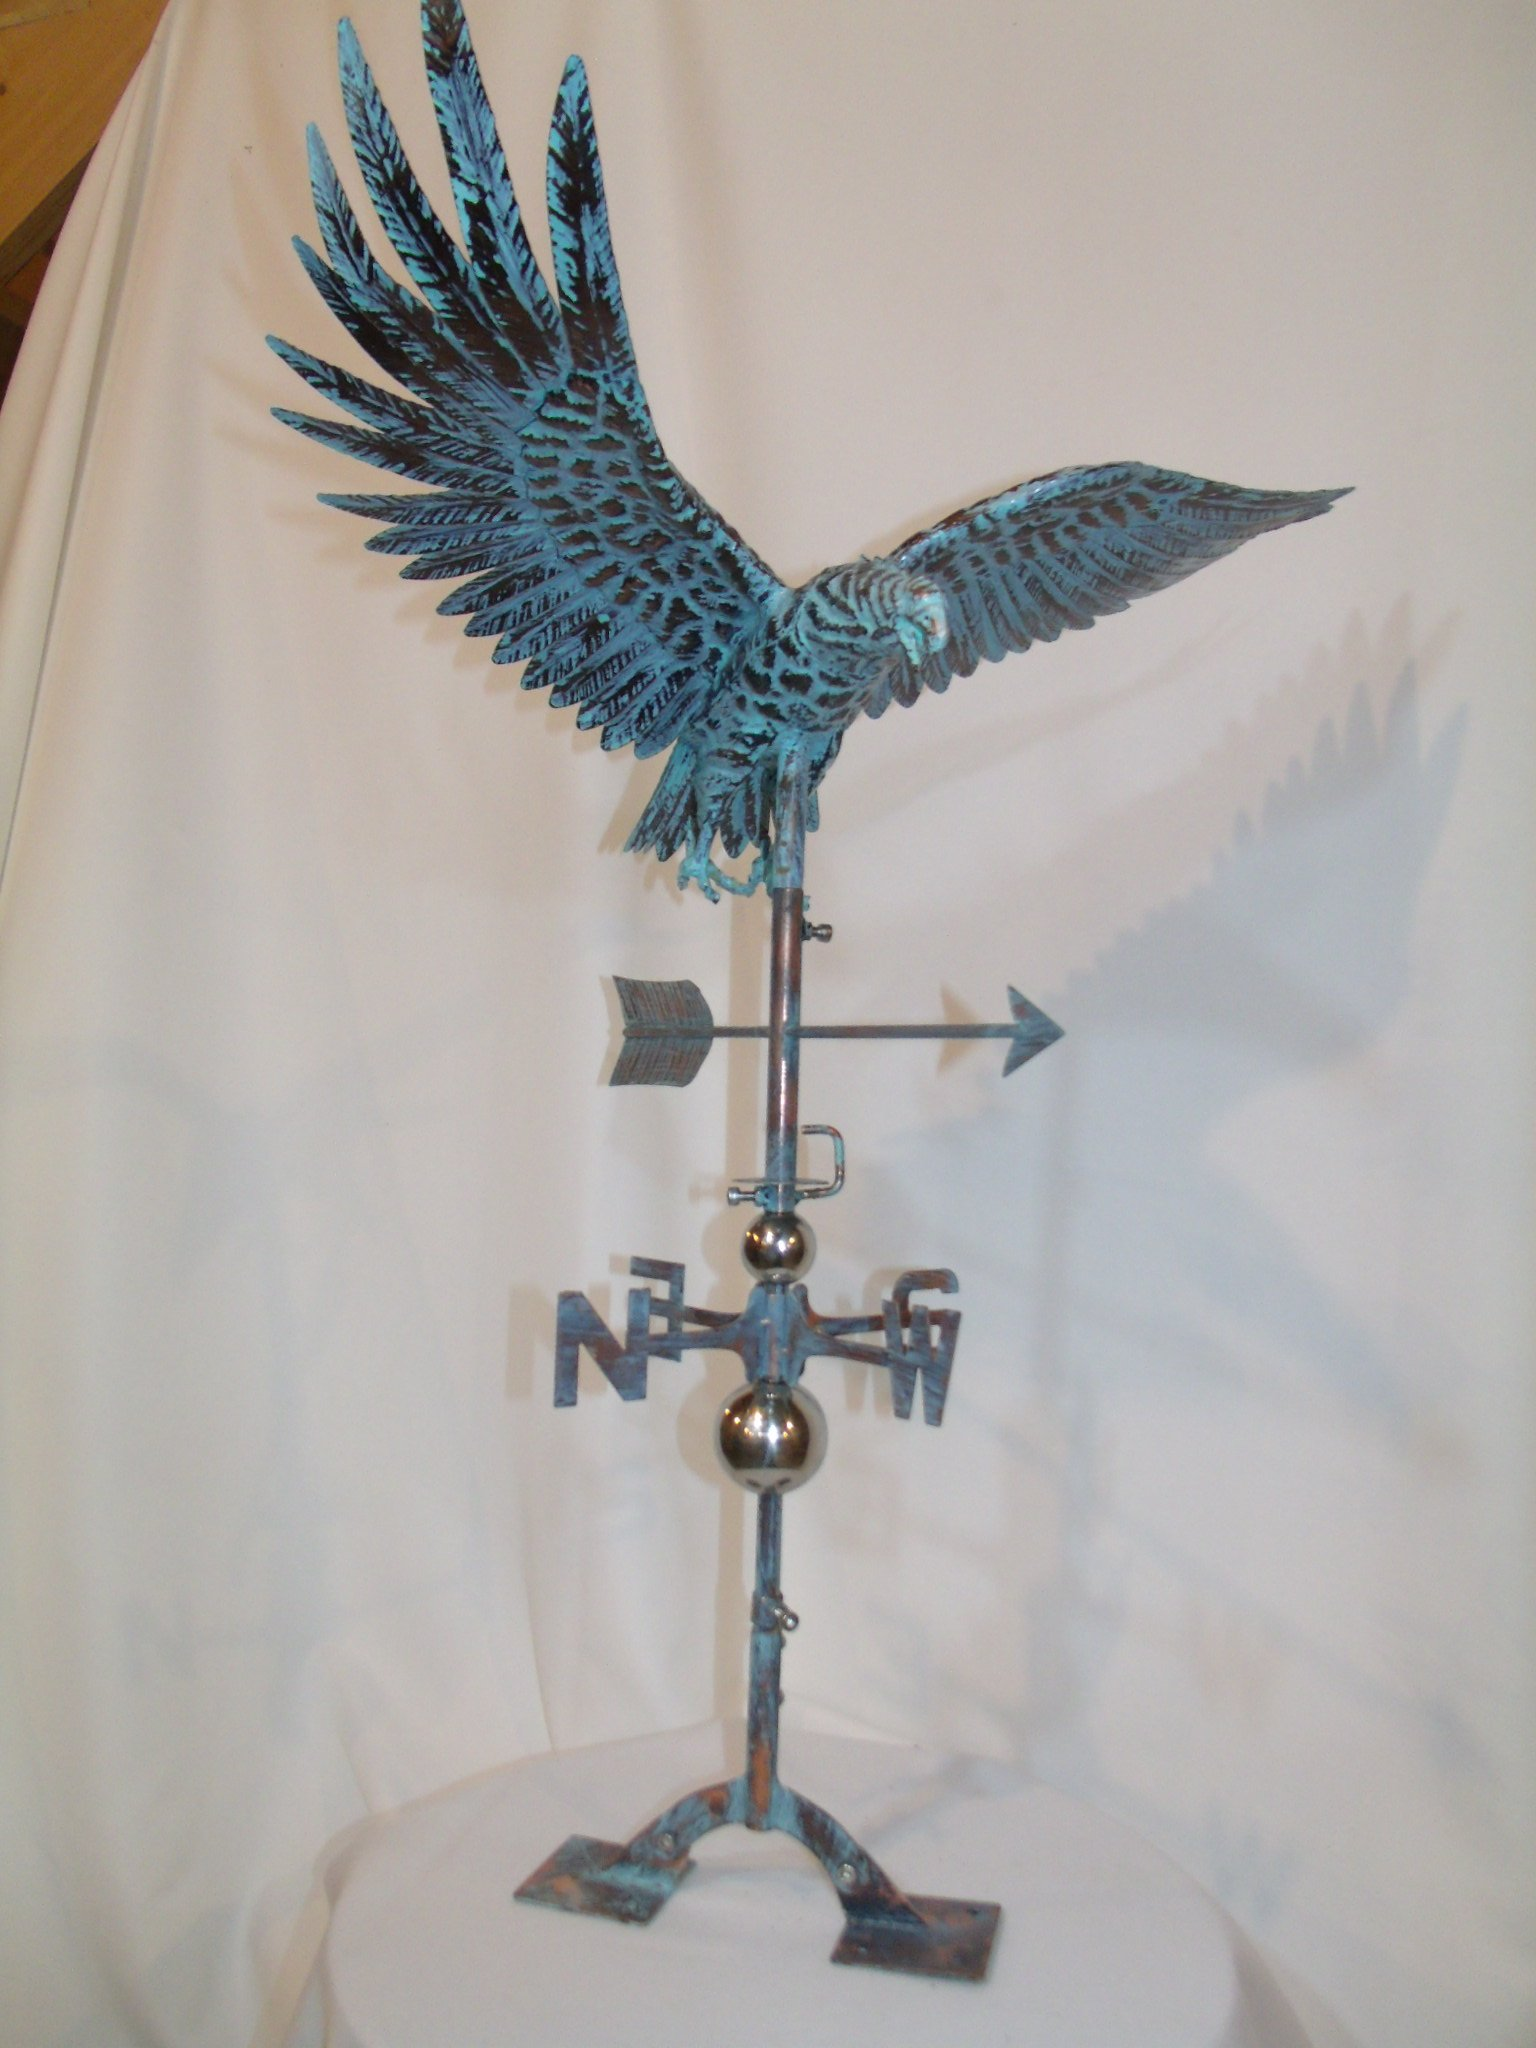 LARGE Handcrafted 3D 3- Dimensional EAGLE Weathervane Copper Patina Finish